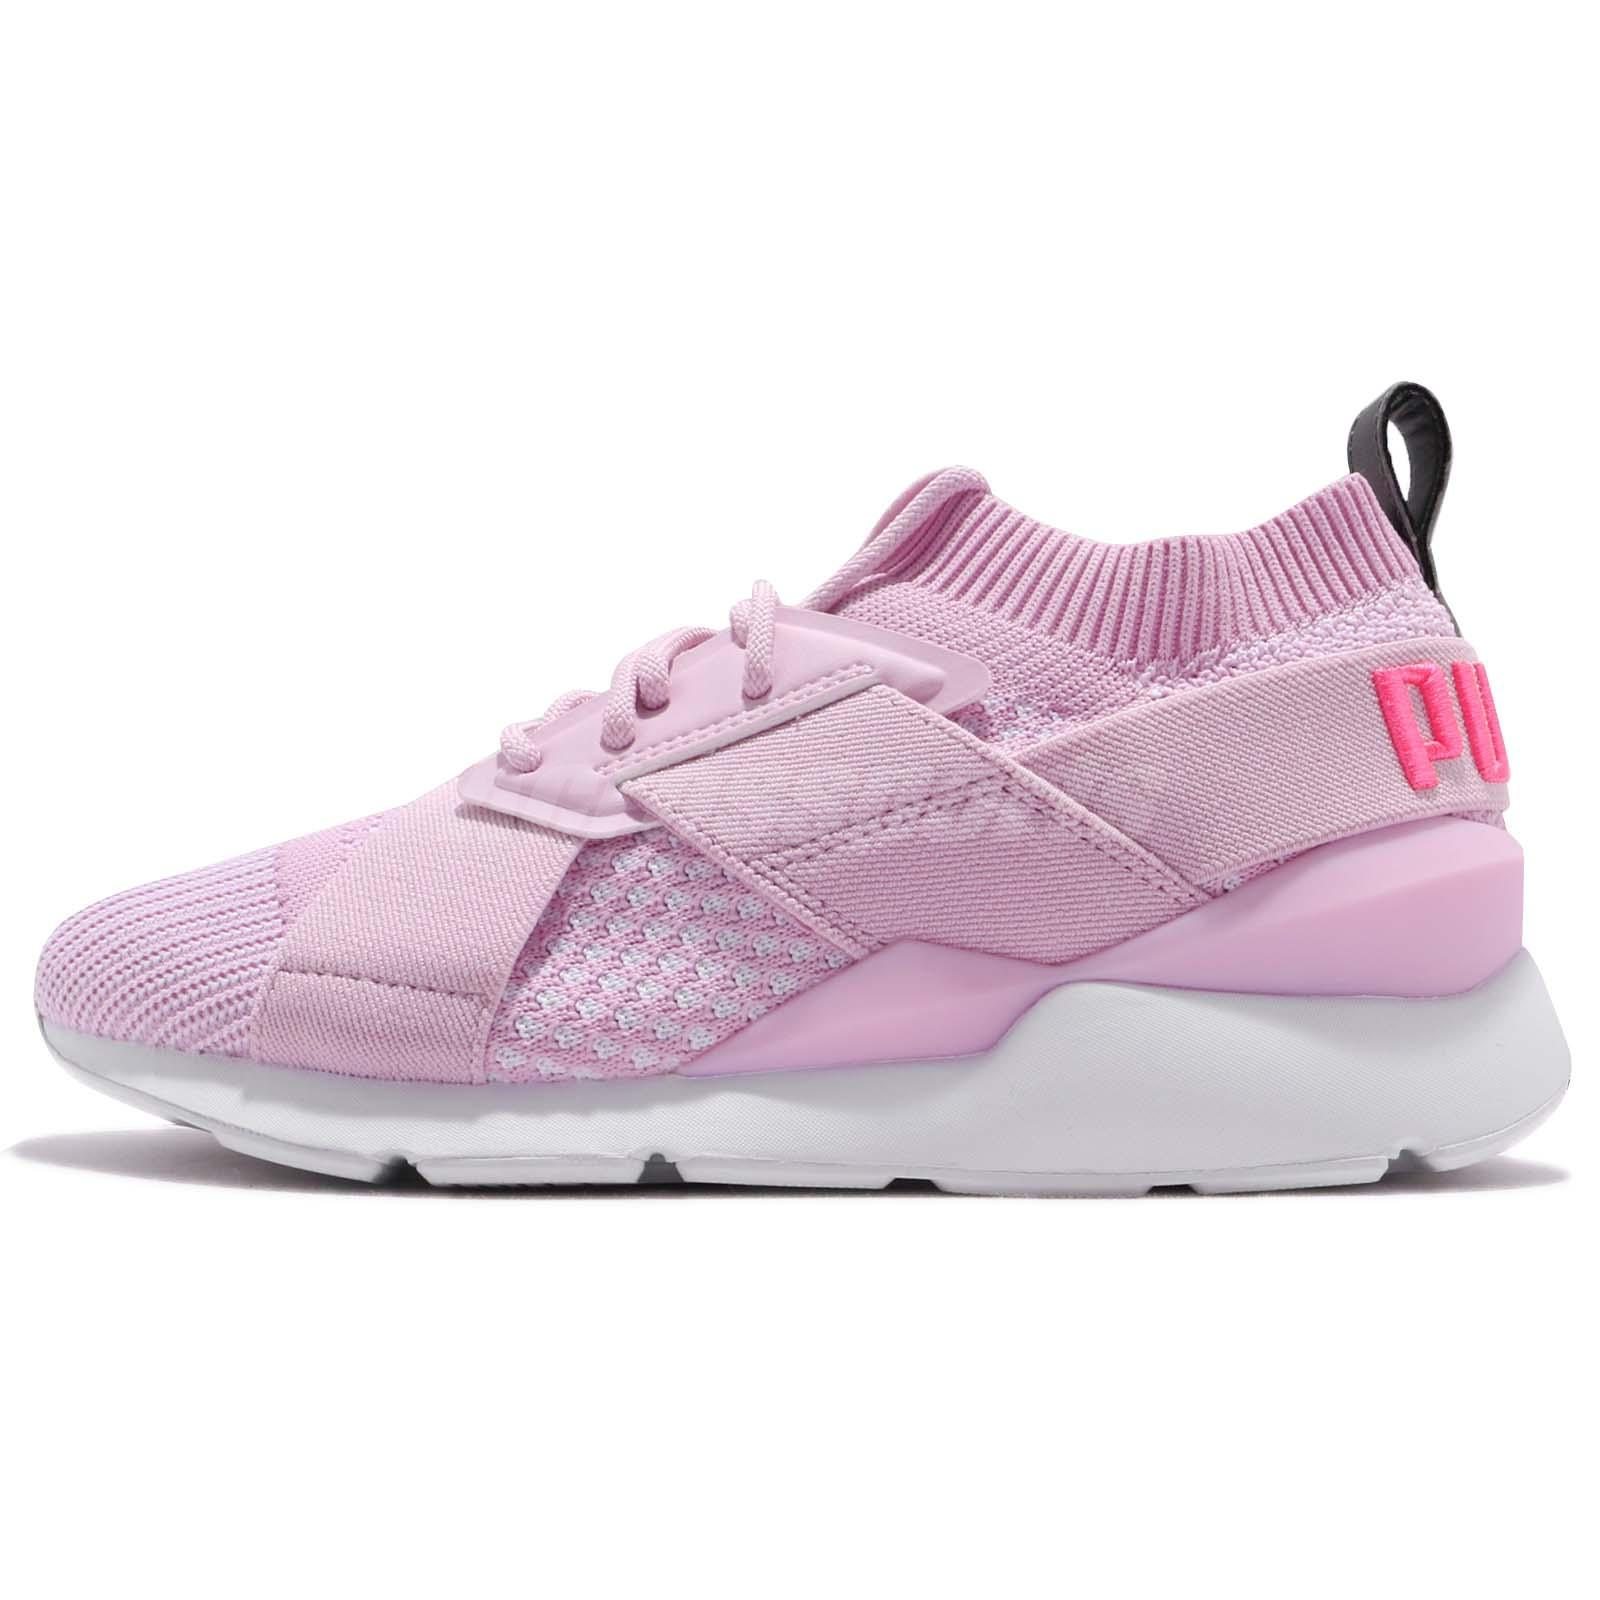 bac24958ae13ca Puma Muse EvoKnit Wns Winsome Orchid Women Running Shoes Sneakers 365536-07